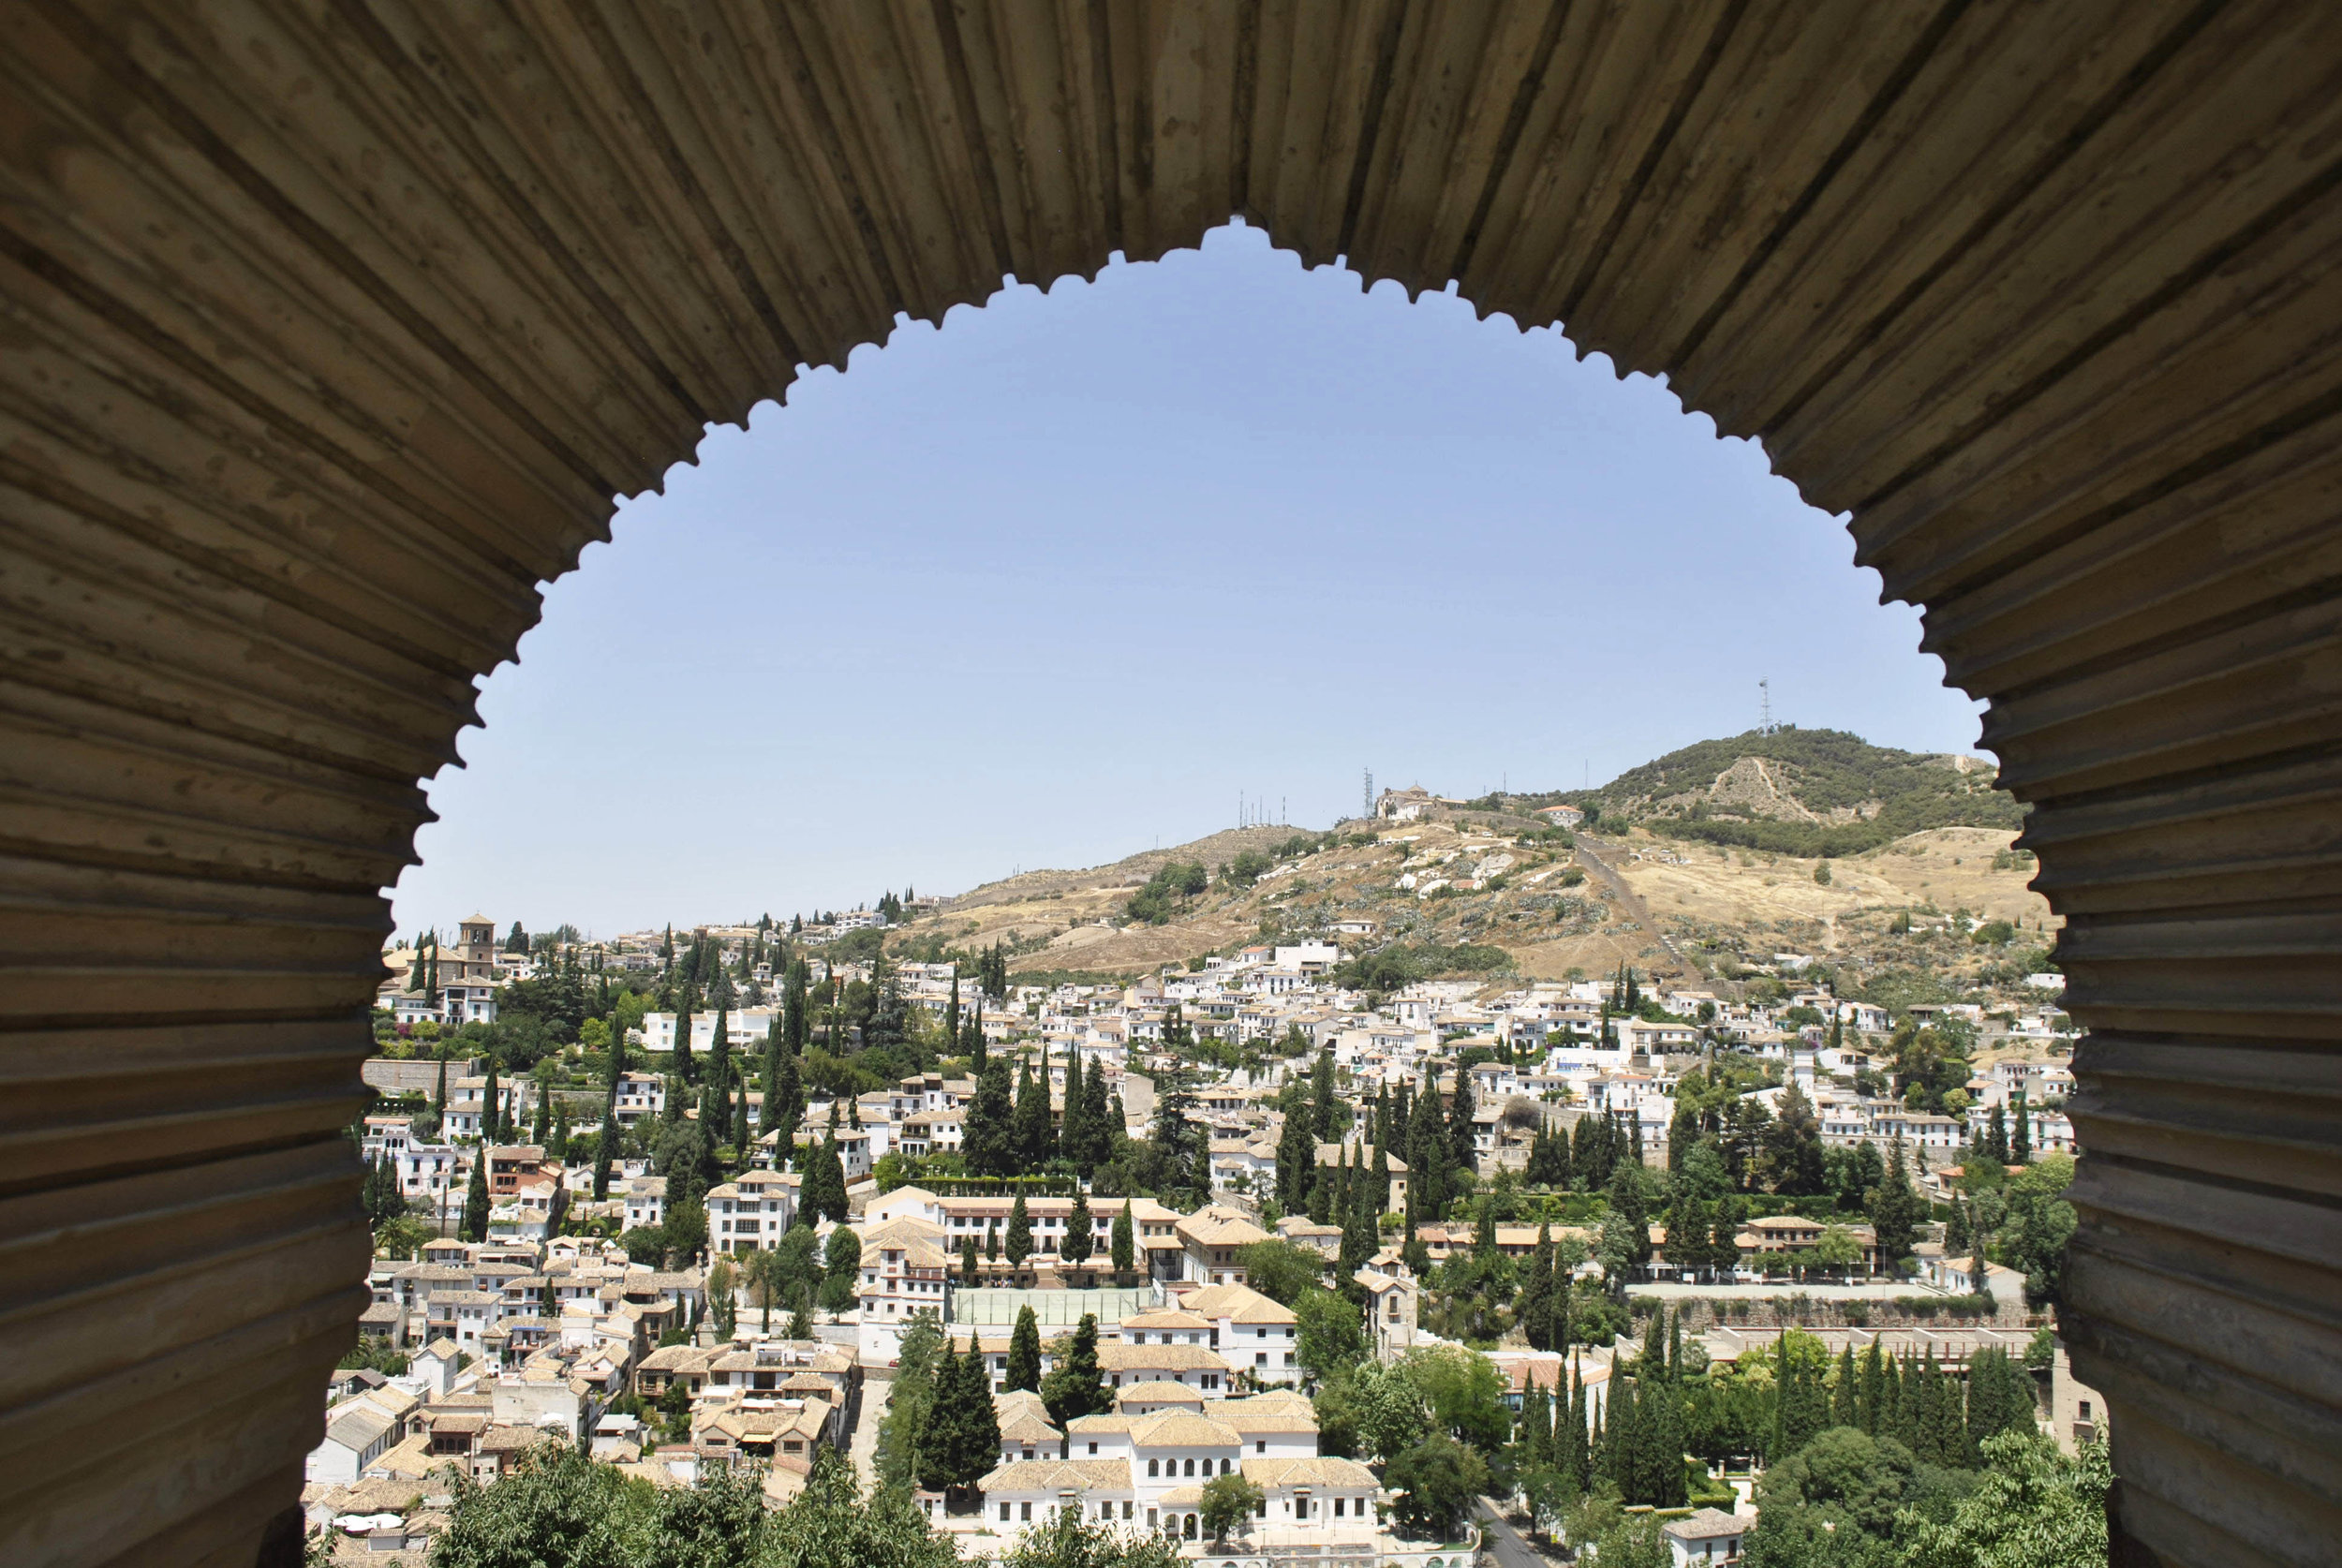 ©Detail Movement - Alhambra Partal Palace view (no 31 on the map)